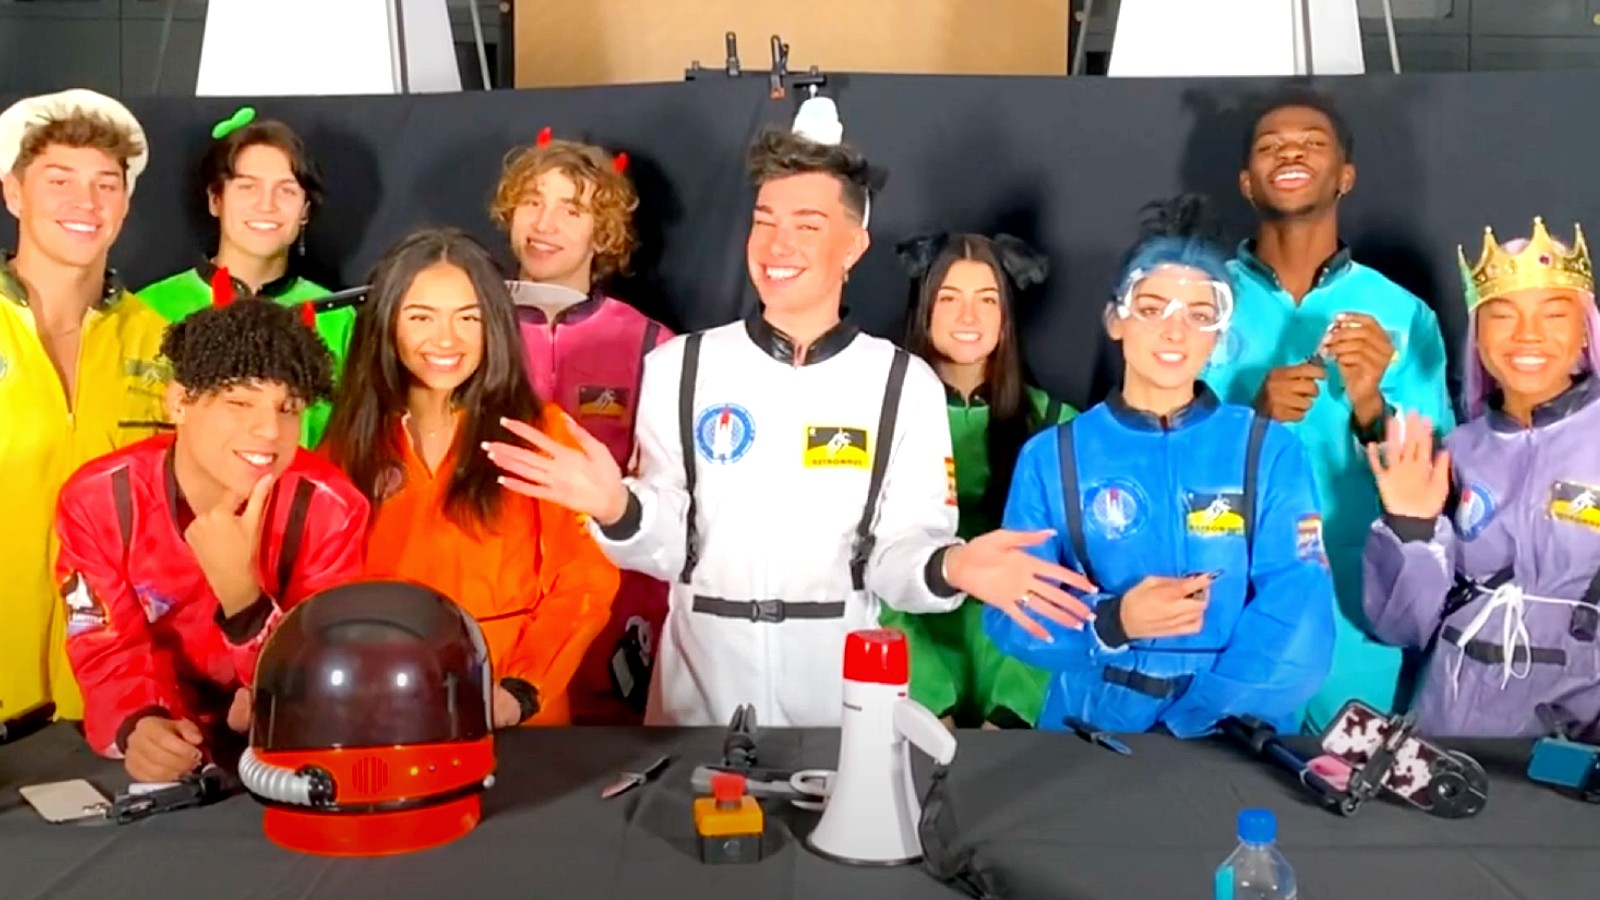 James Charles poses with other social media stars in Among Us inspired costumes